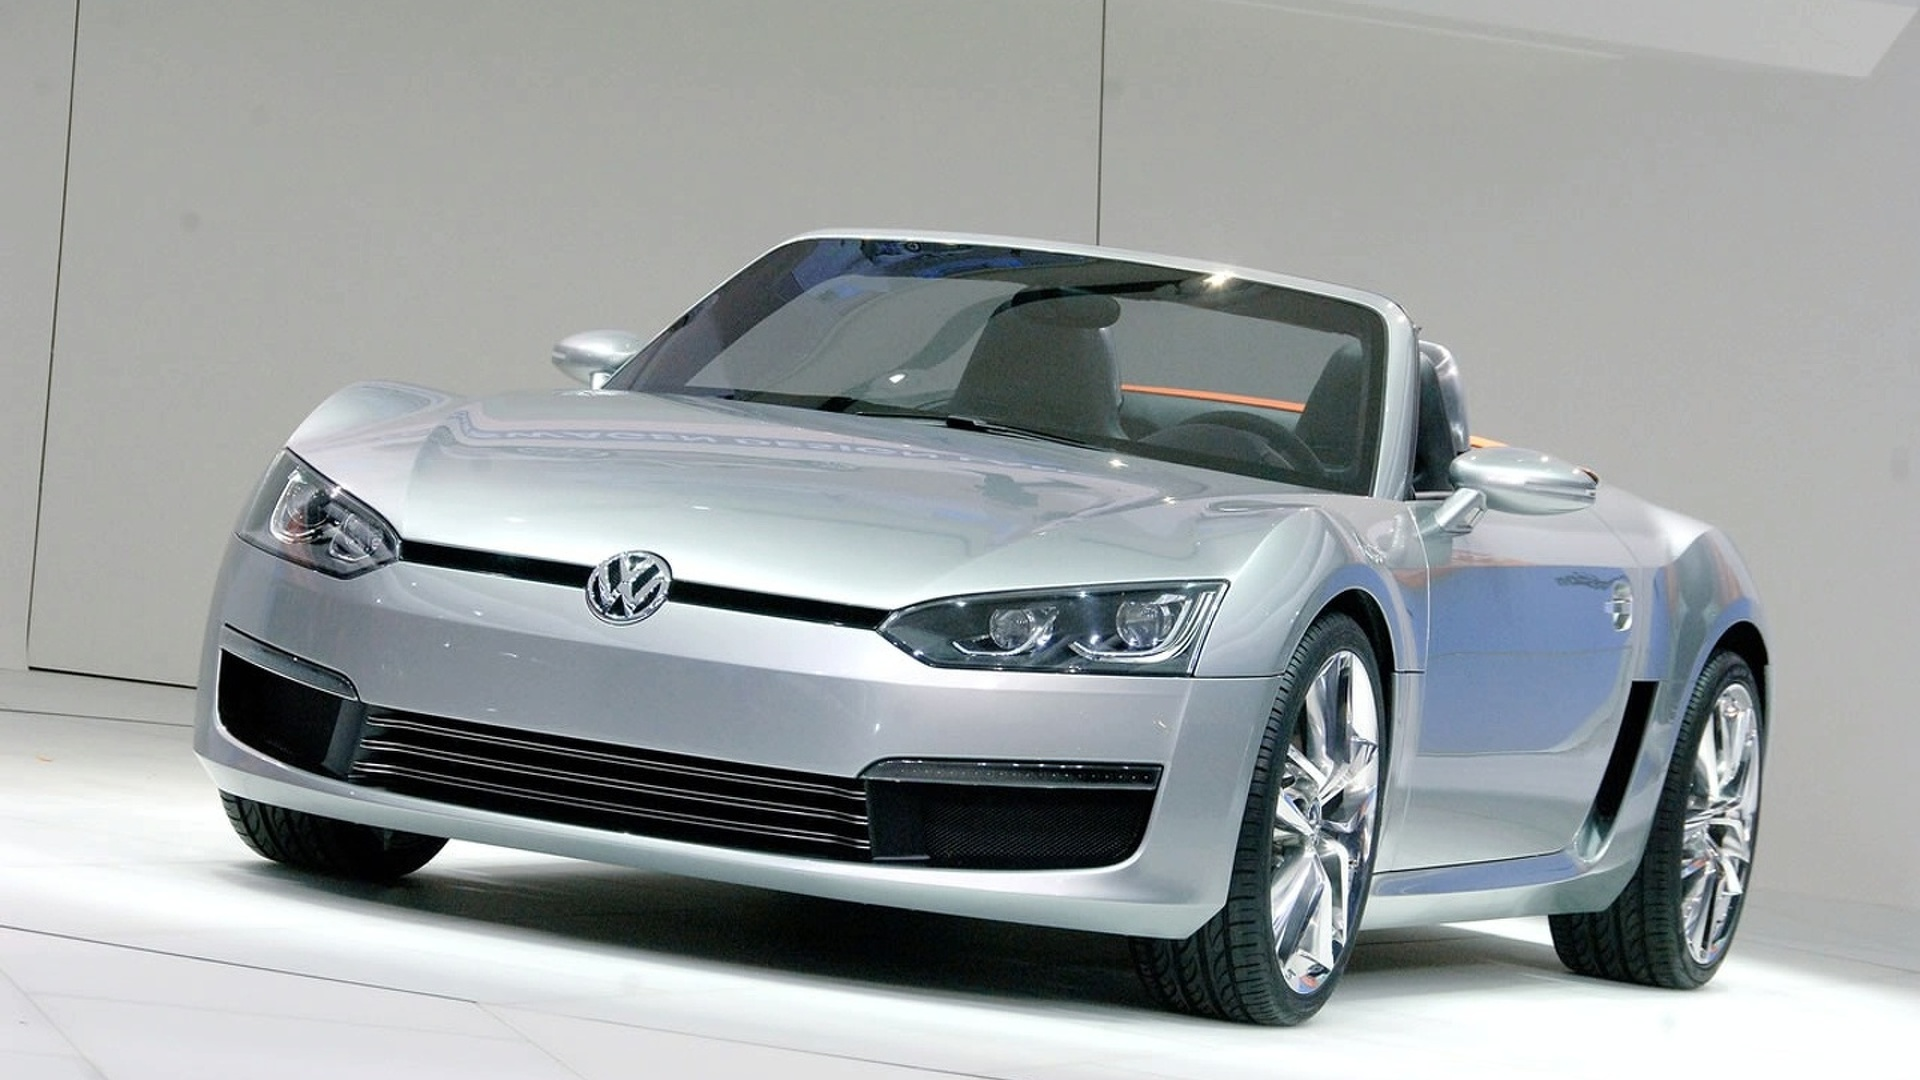 Volkswagen doesn't have plans for BlueSport-like small sports car